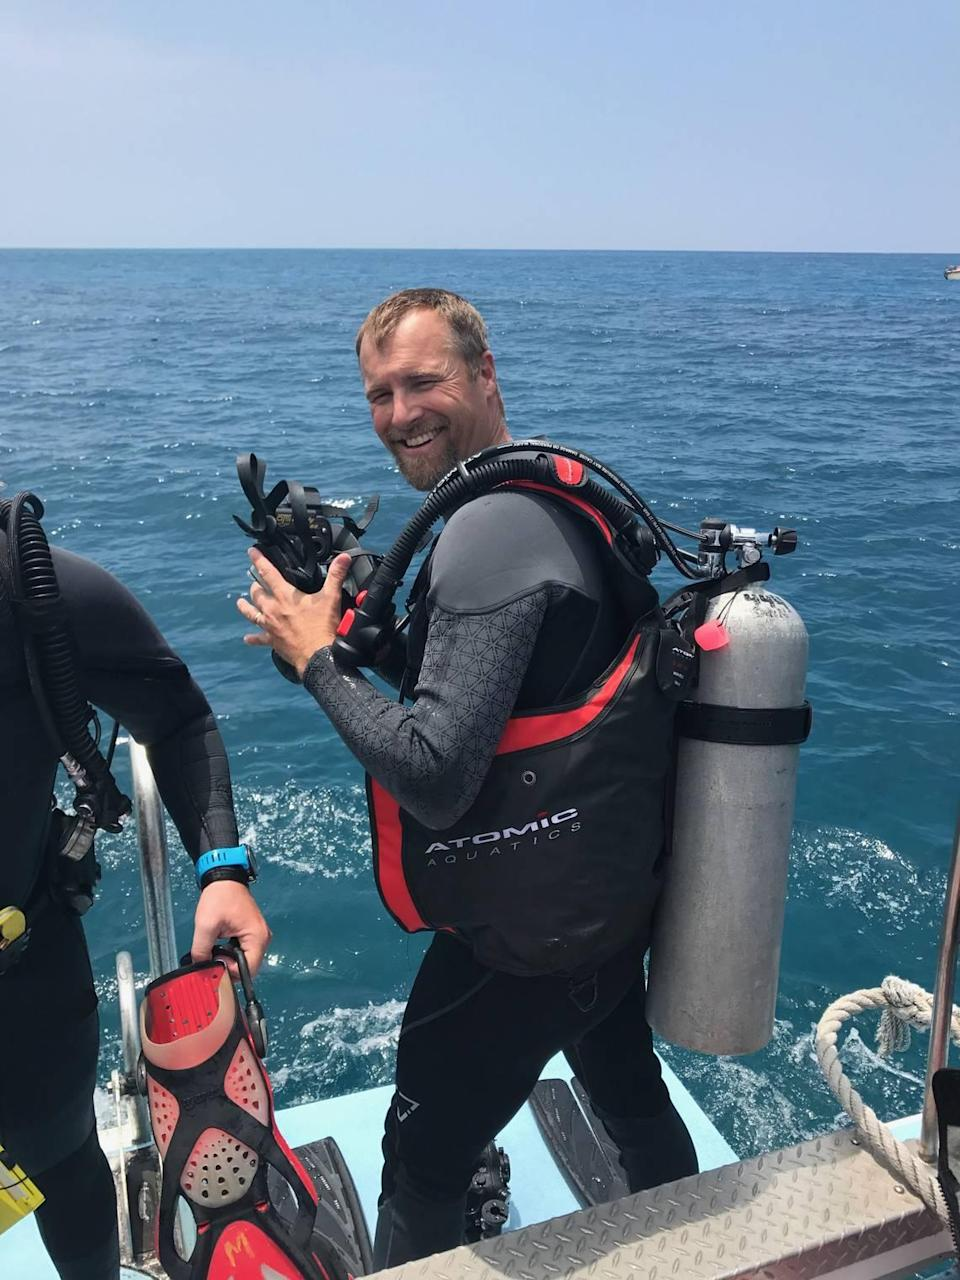 Mike Heithaus, a marine ecologist and dean of FIU's College of Arts, Sciences & Education, is seen on the waters. He was co-author of of a study on sharks and their roles in the ocean.